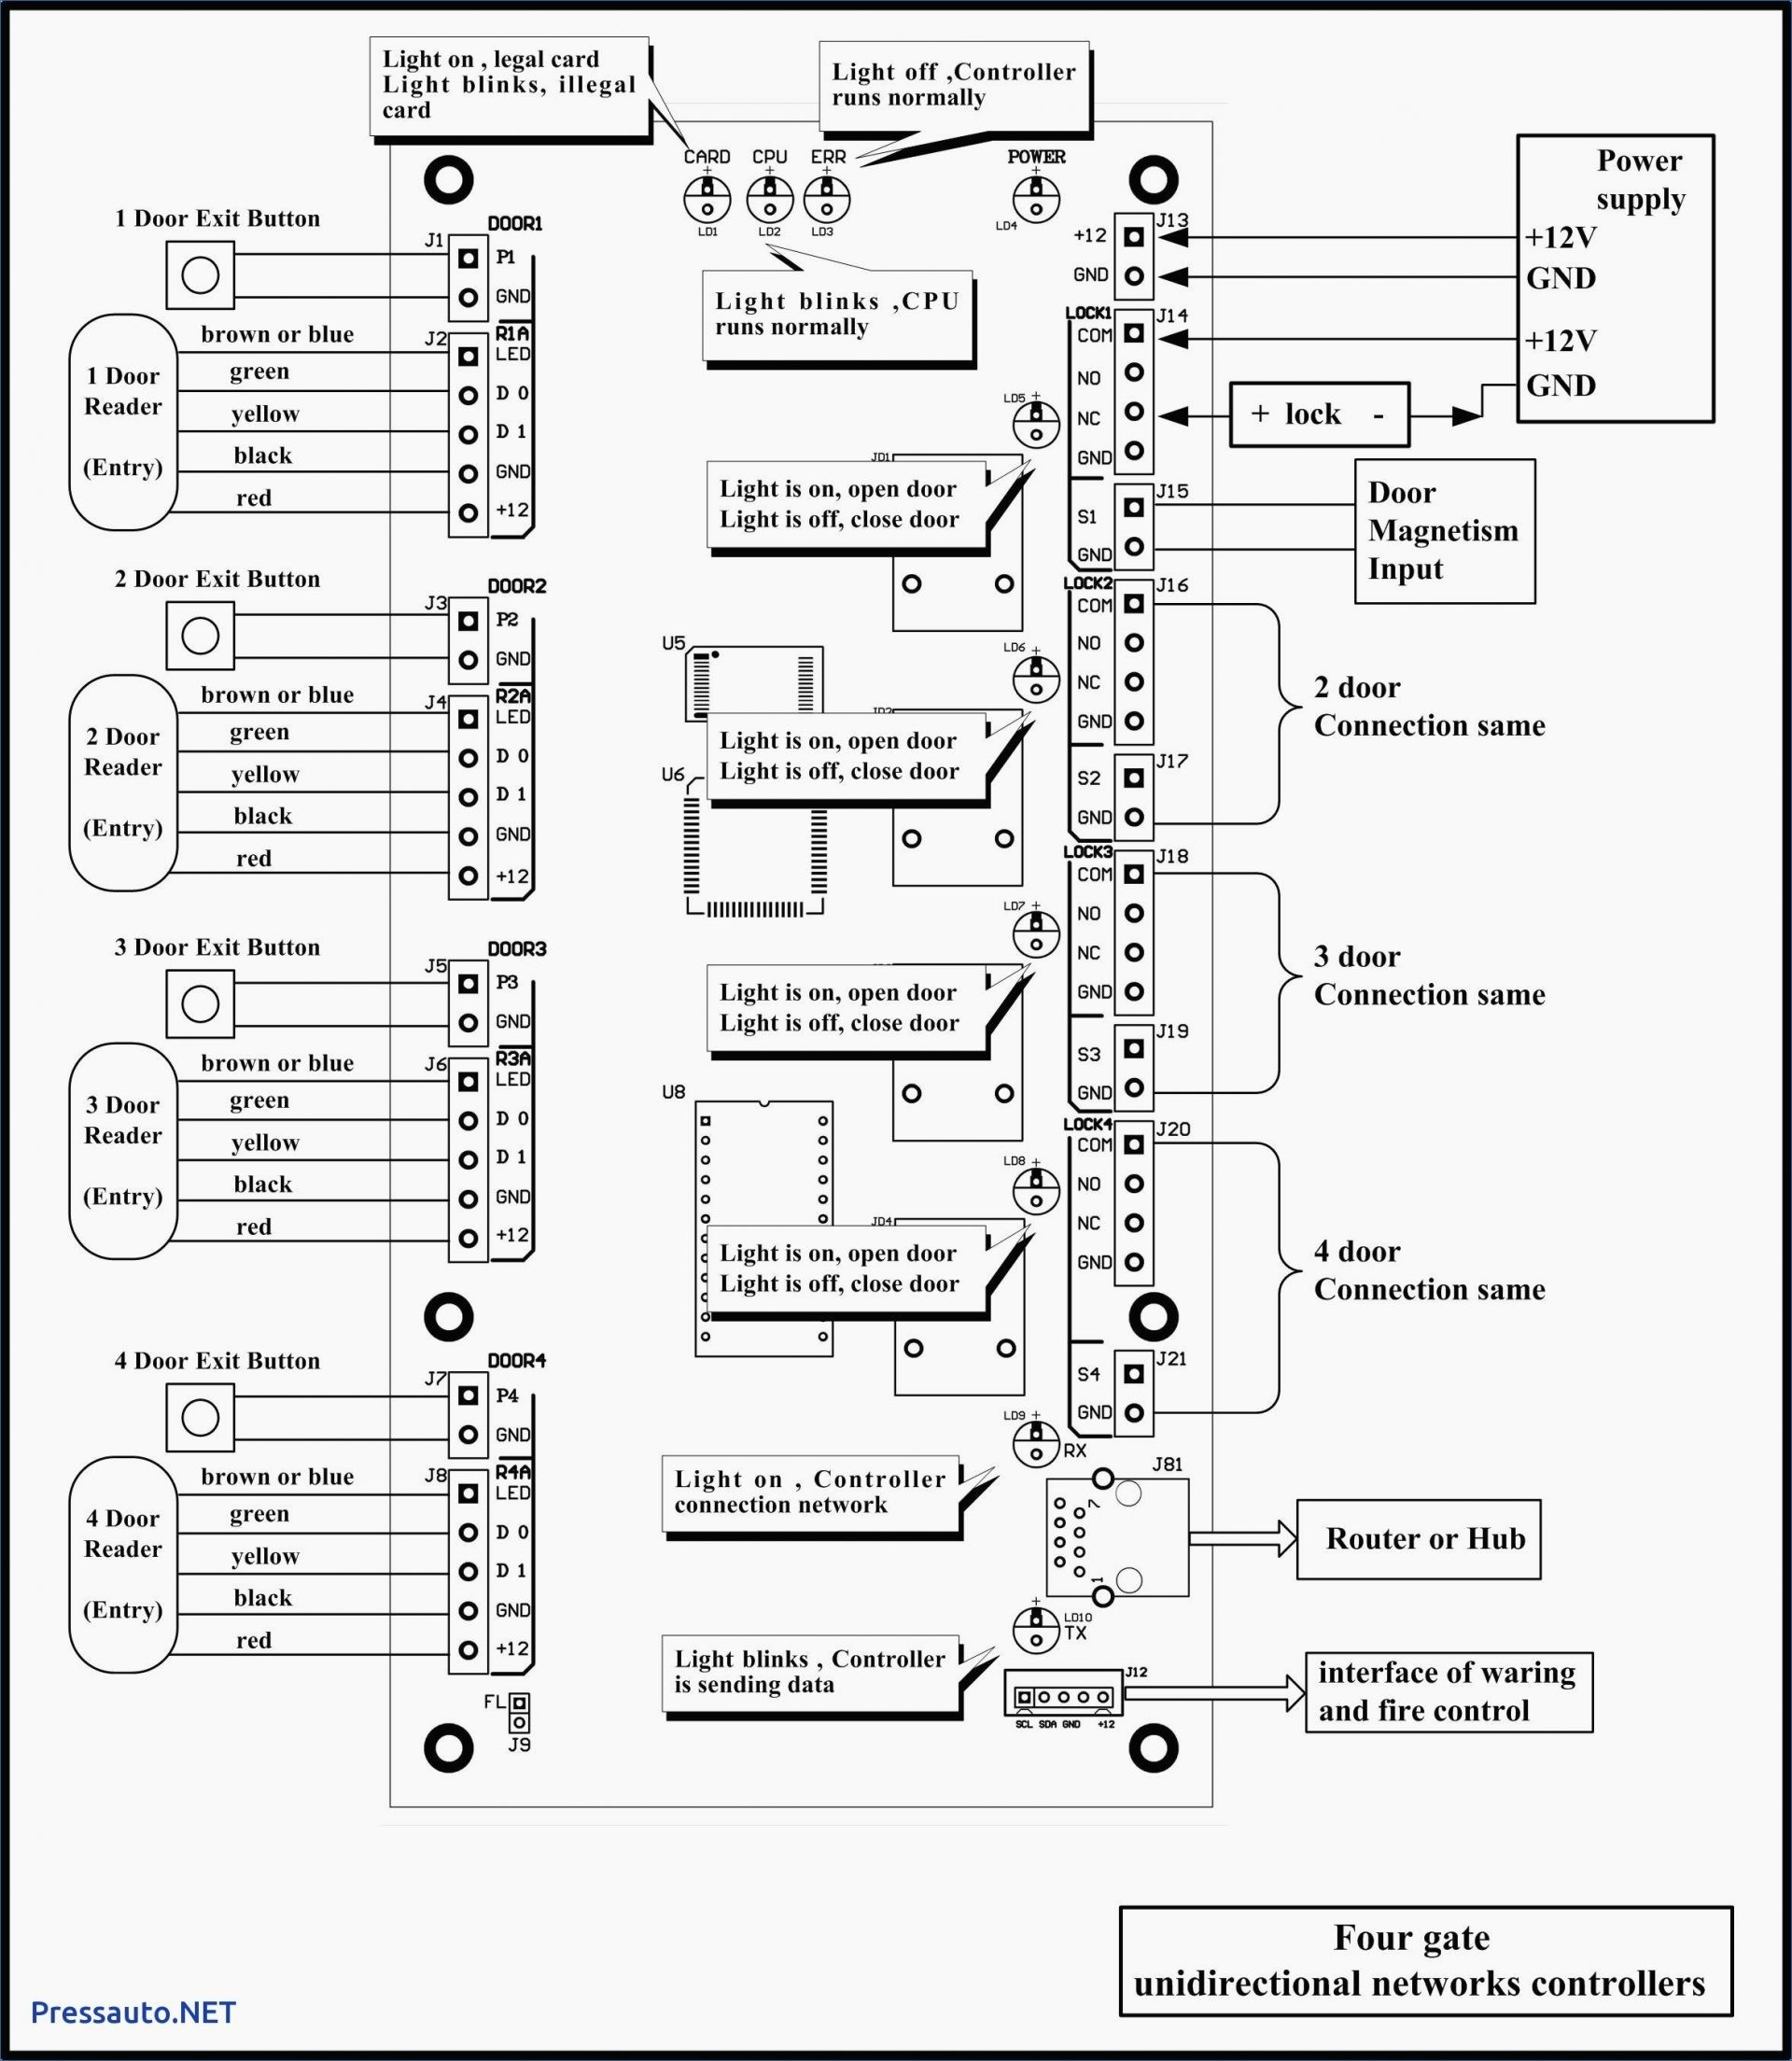 Wire Diagram Kenwood Kdc 210U - All Wiring Diagram Data - Kenwood Kdc-210U Wiring Diagram